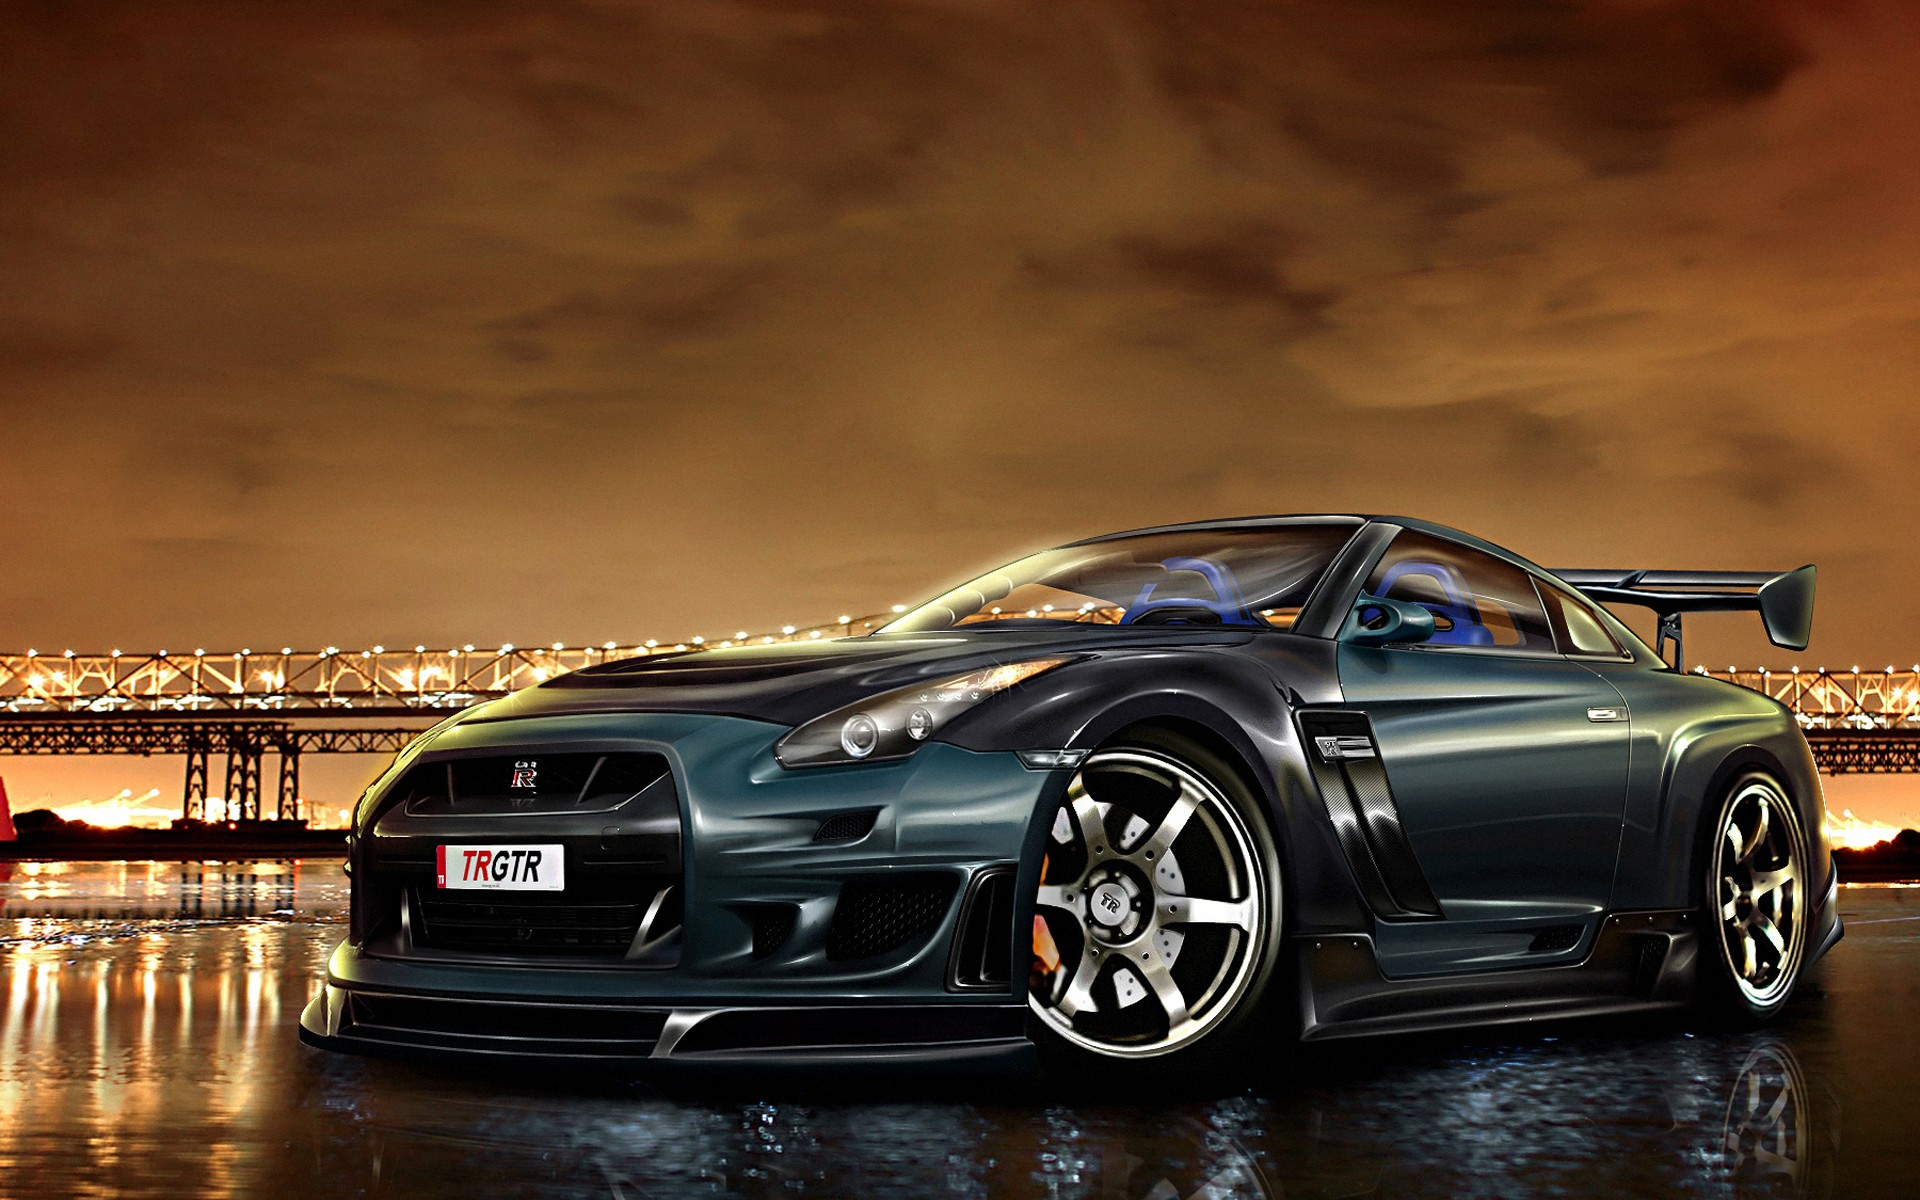 Super Cars Wallpapers vehicles that stun the people Nissan GT R 1920x1200